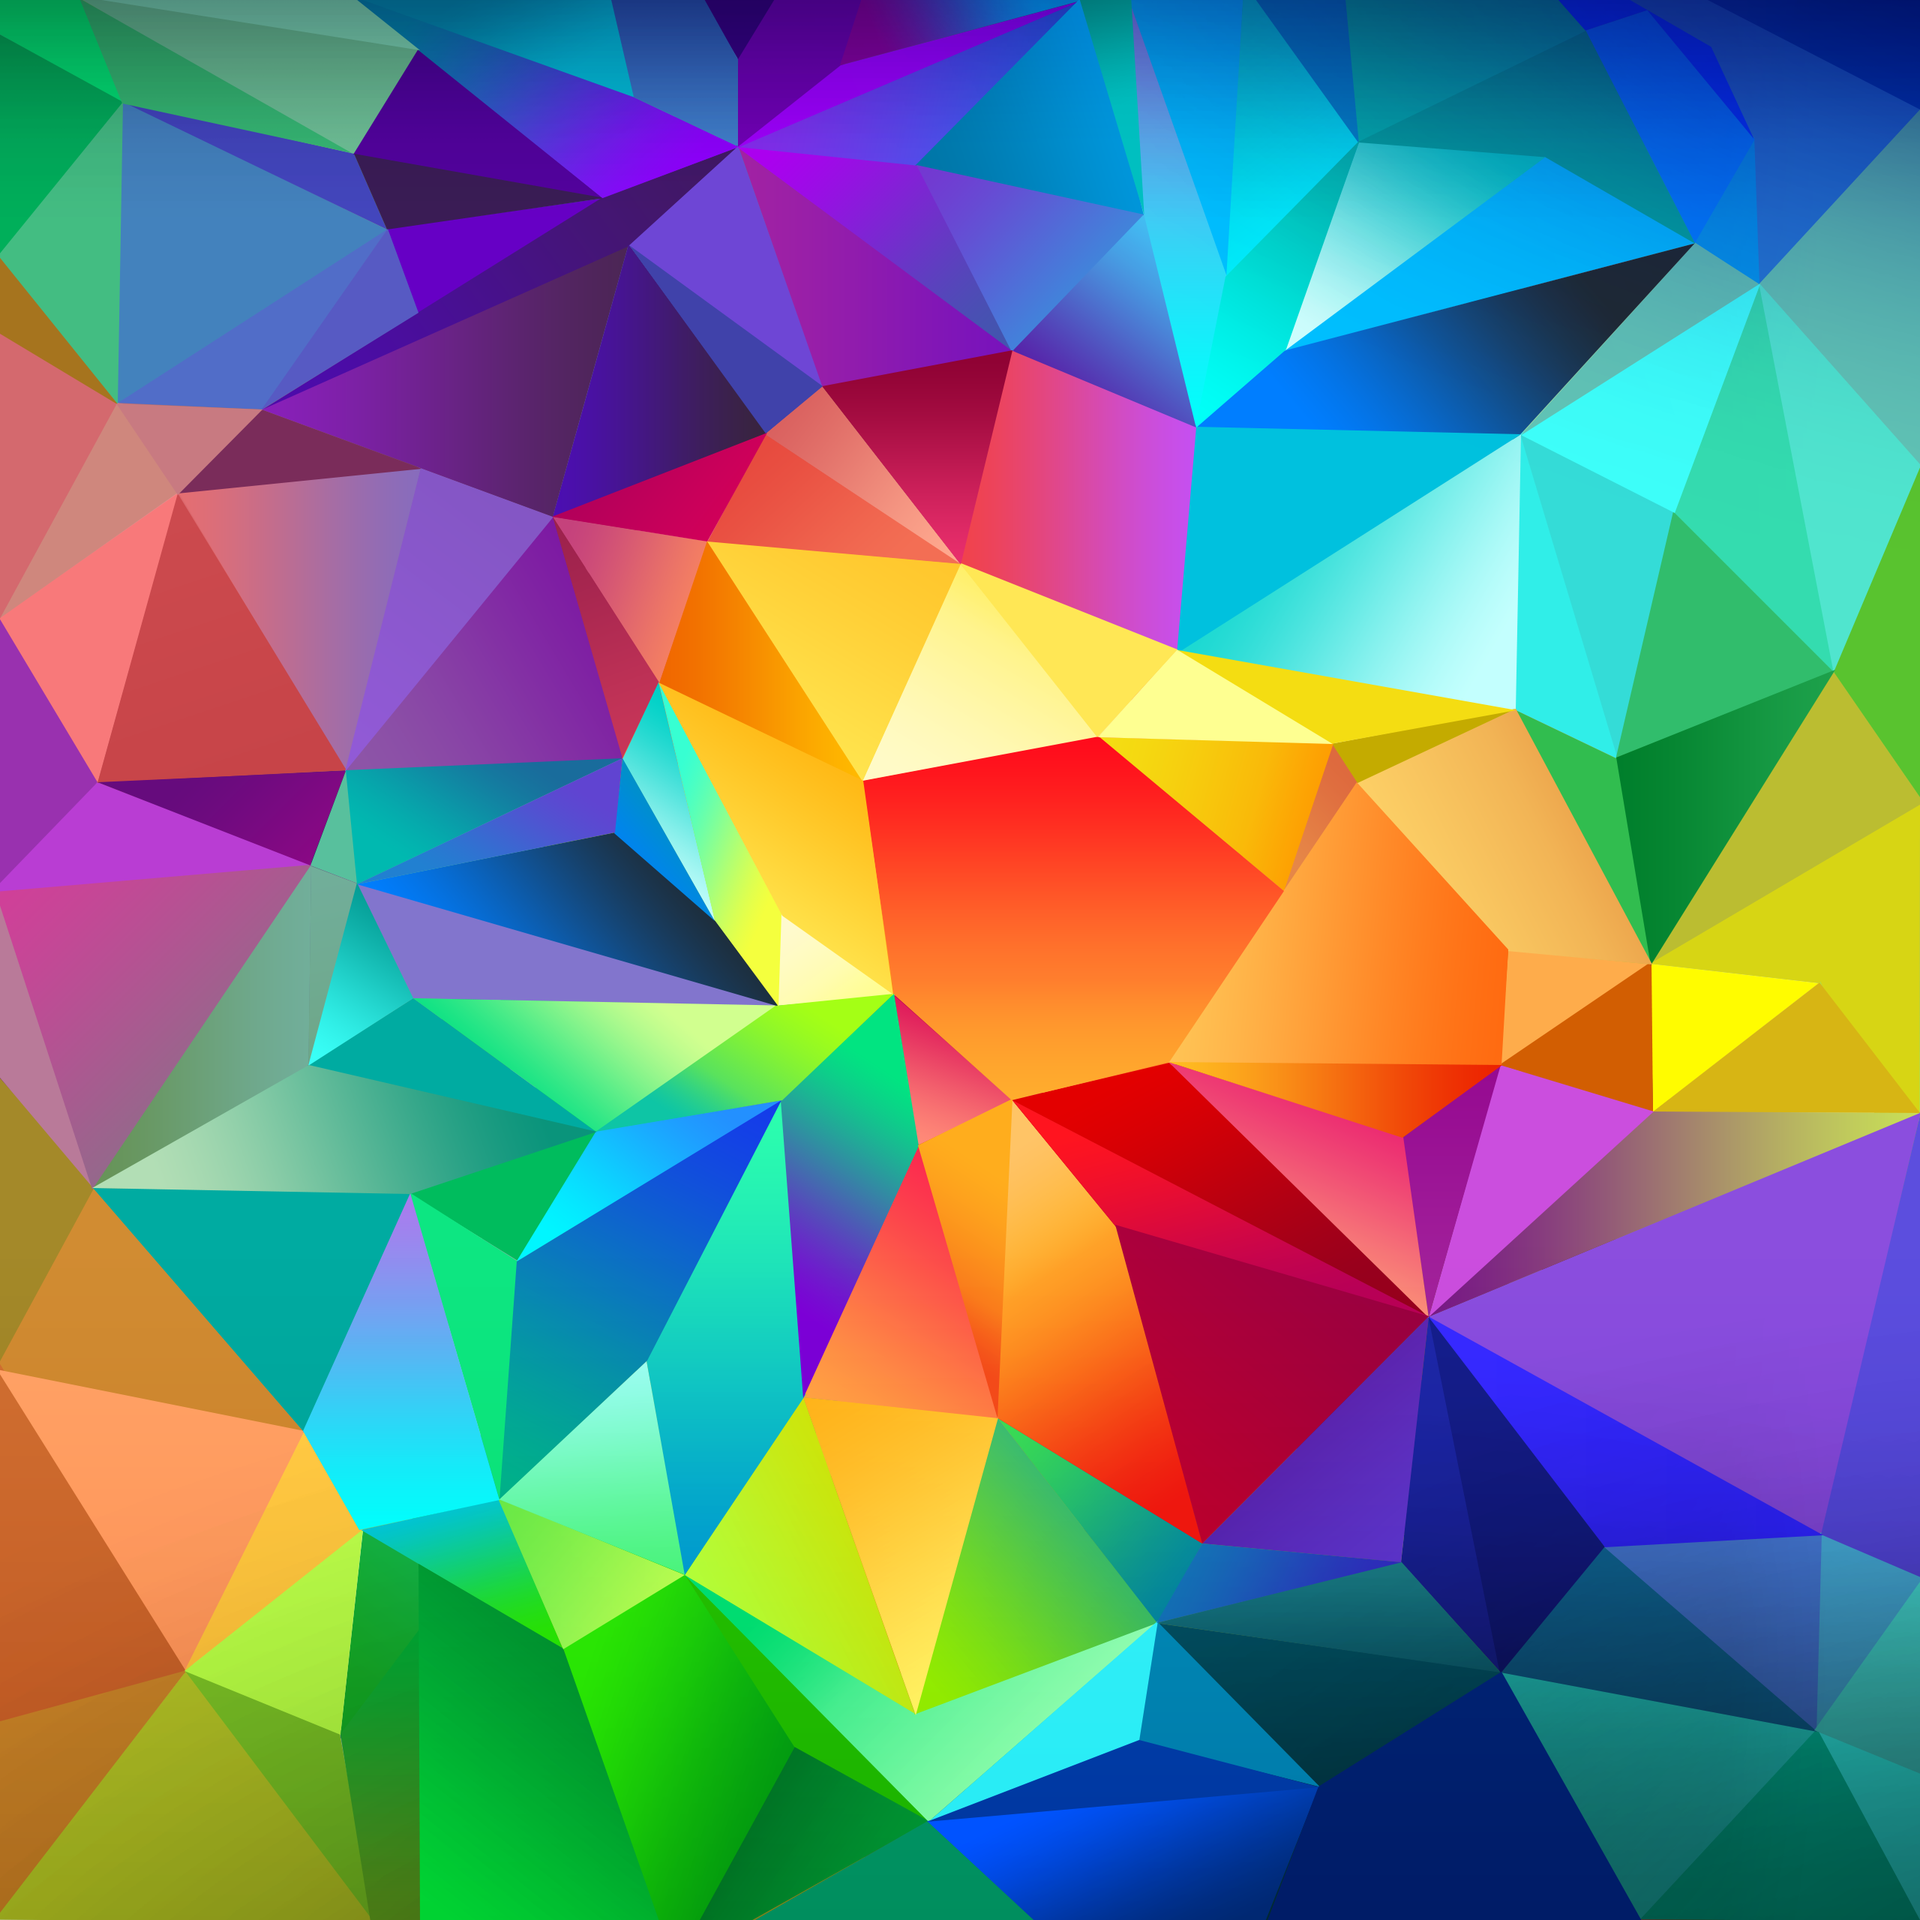 Download Get All The Samsung Galaxy S5 Wallpapers Here Now